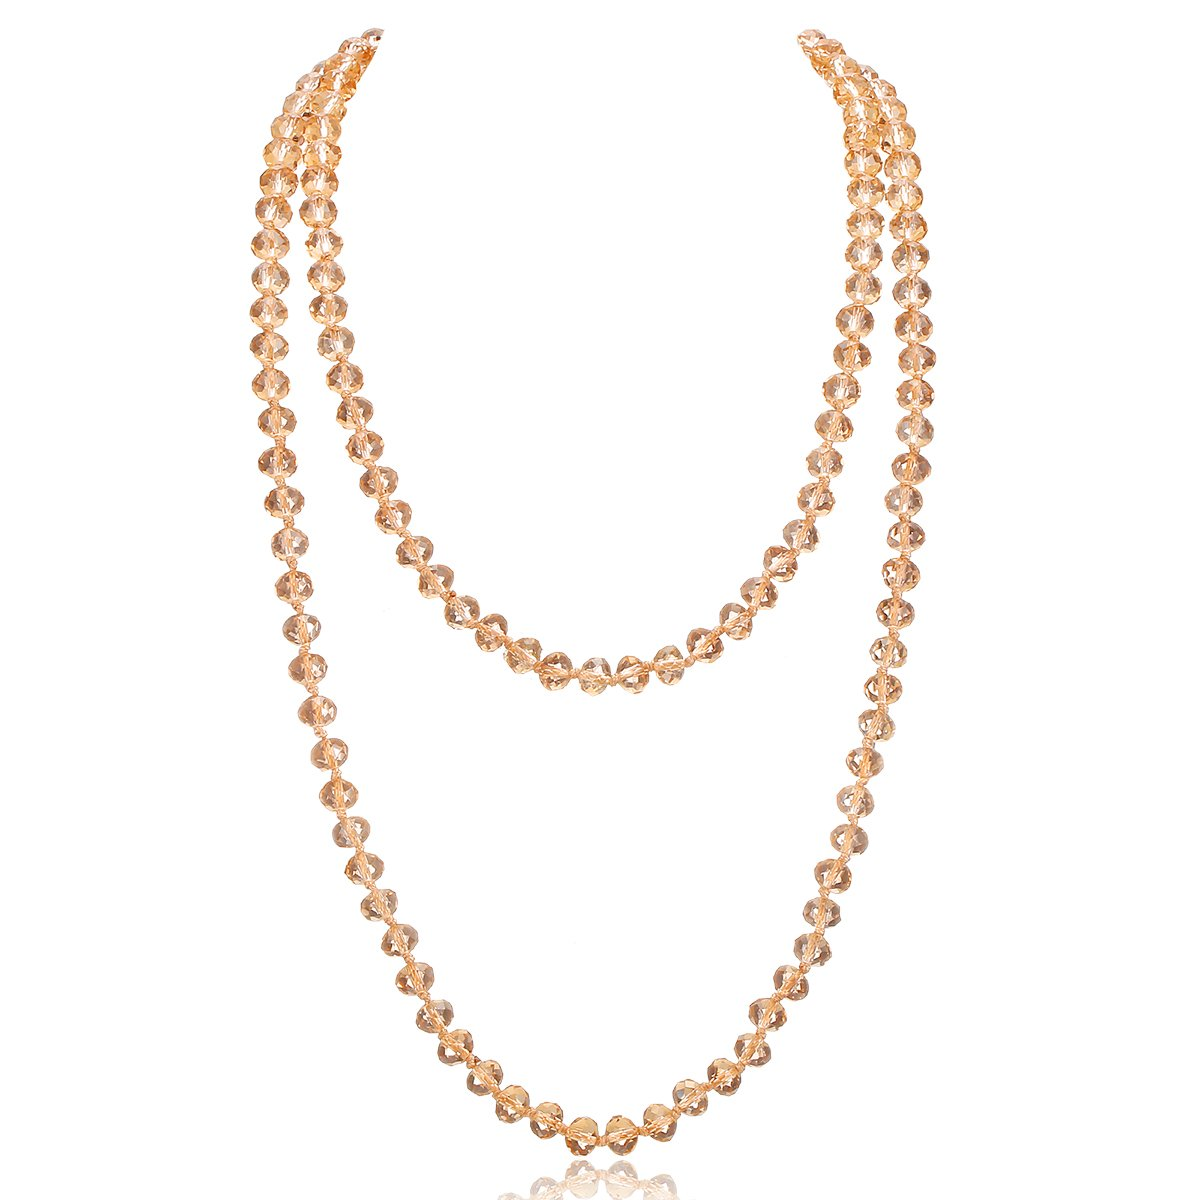 Long Crystal Wrap Necklace Women Beaded Knotted Jewelry 48'' Champagne Bling Beads